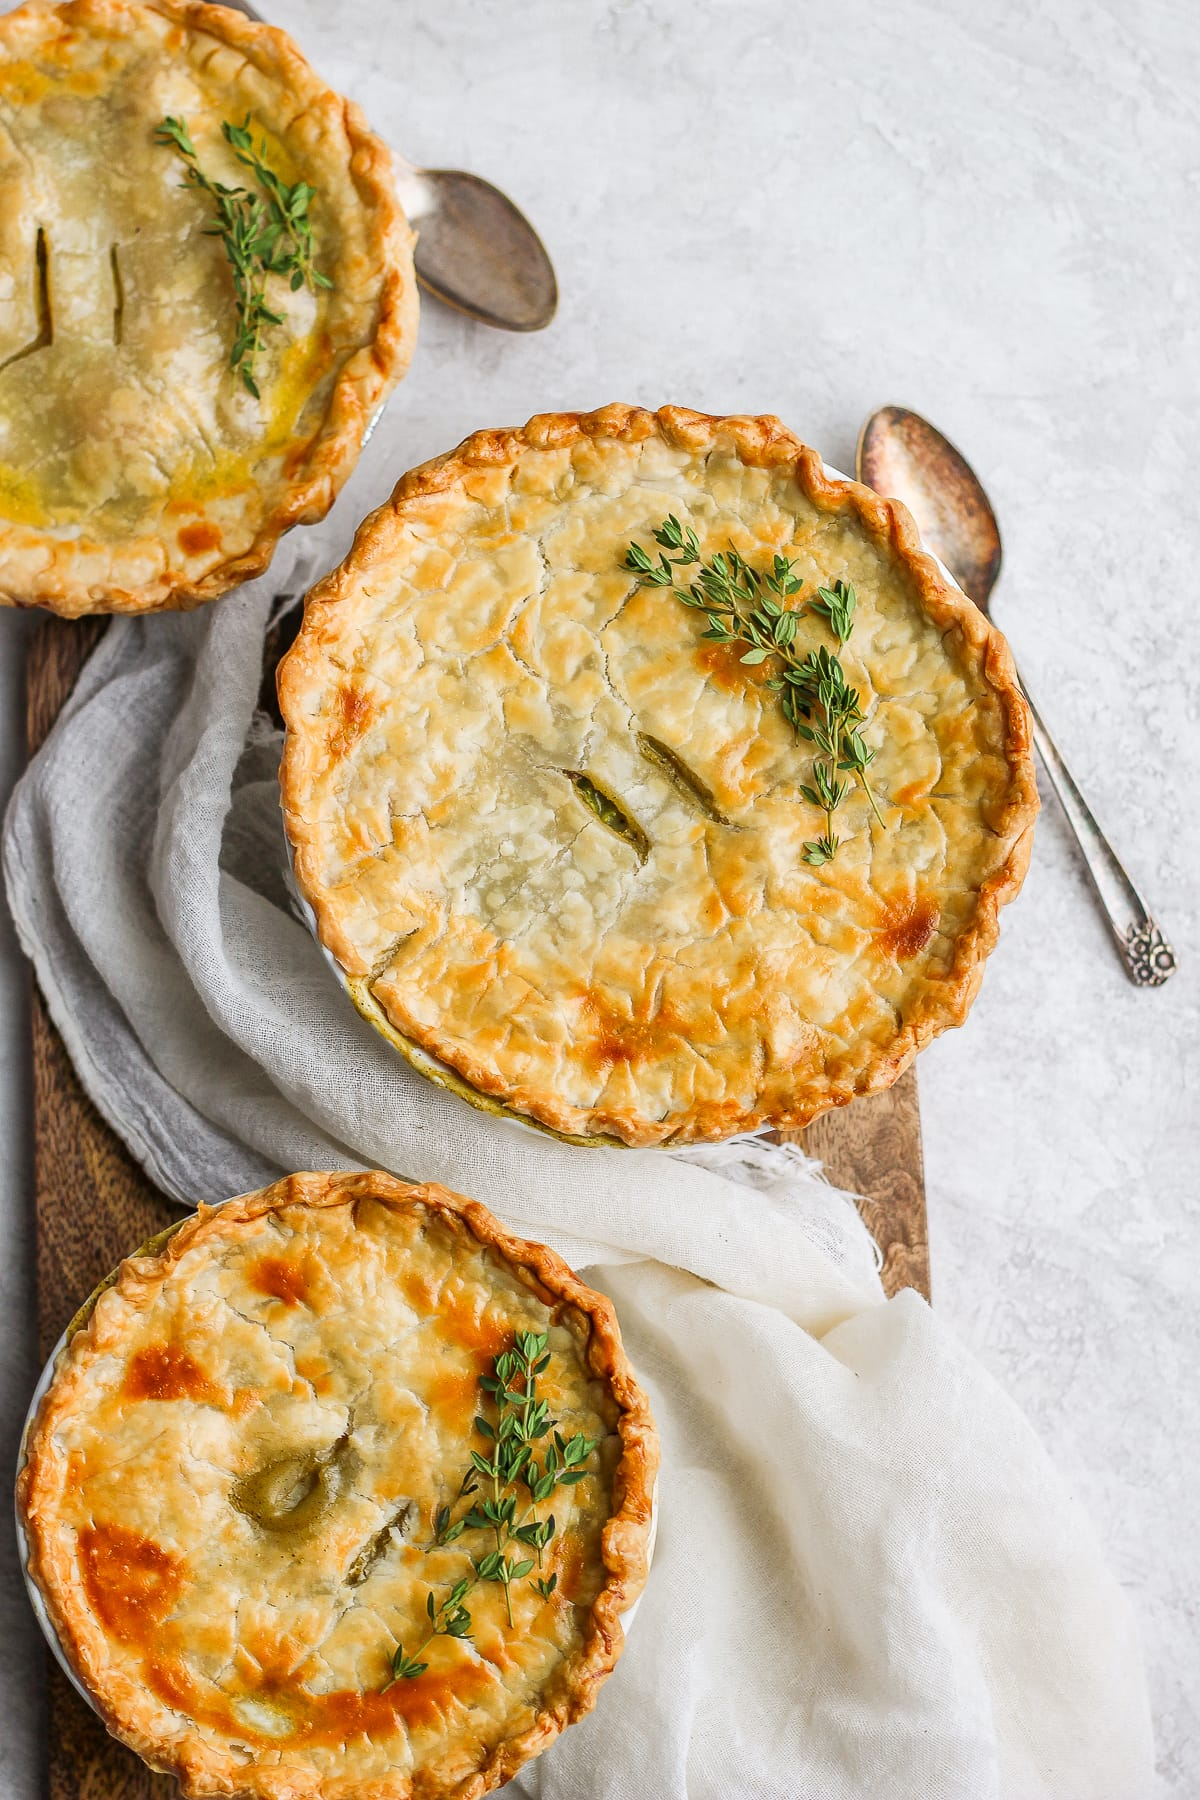 Creamy Fall Harvest Dairy-Free Veggie Pot Pies - warm andcomforting pot pies that are dairy-free! #dairyfree #potpie #fallrecipes